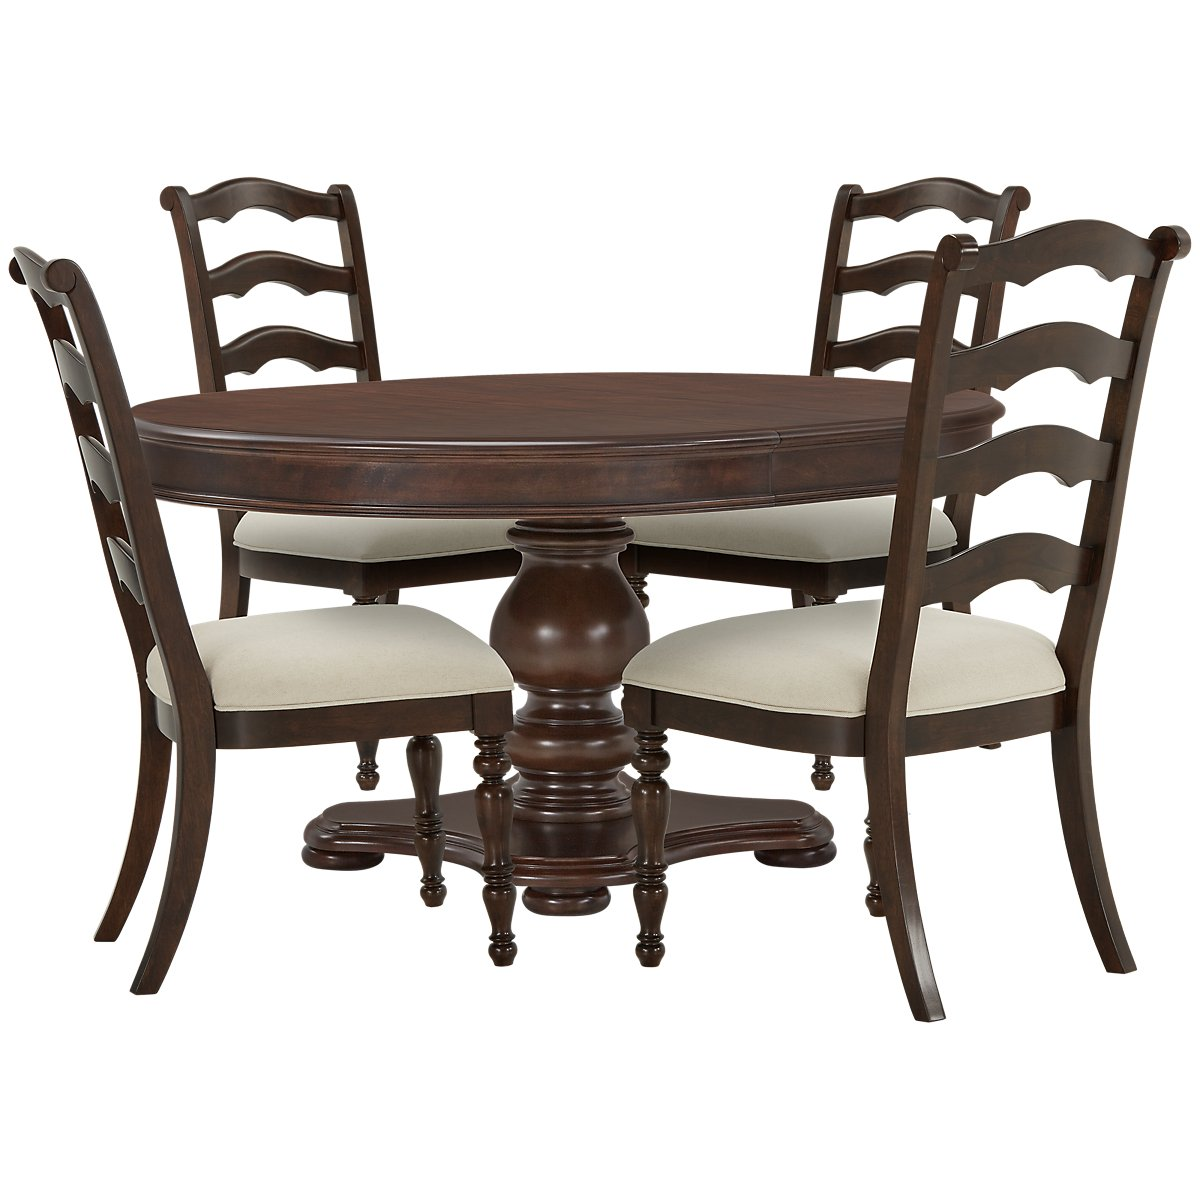 City furniture savannah dark tone round table 4 chairs for Round table 85 ortenau